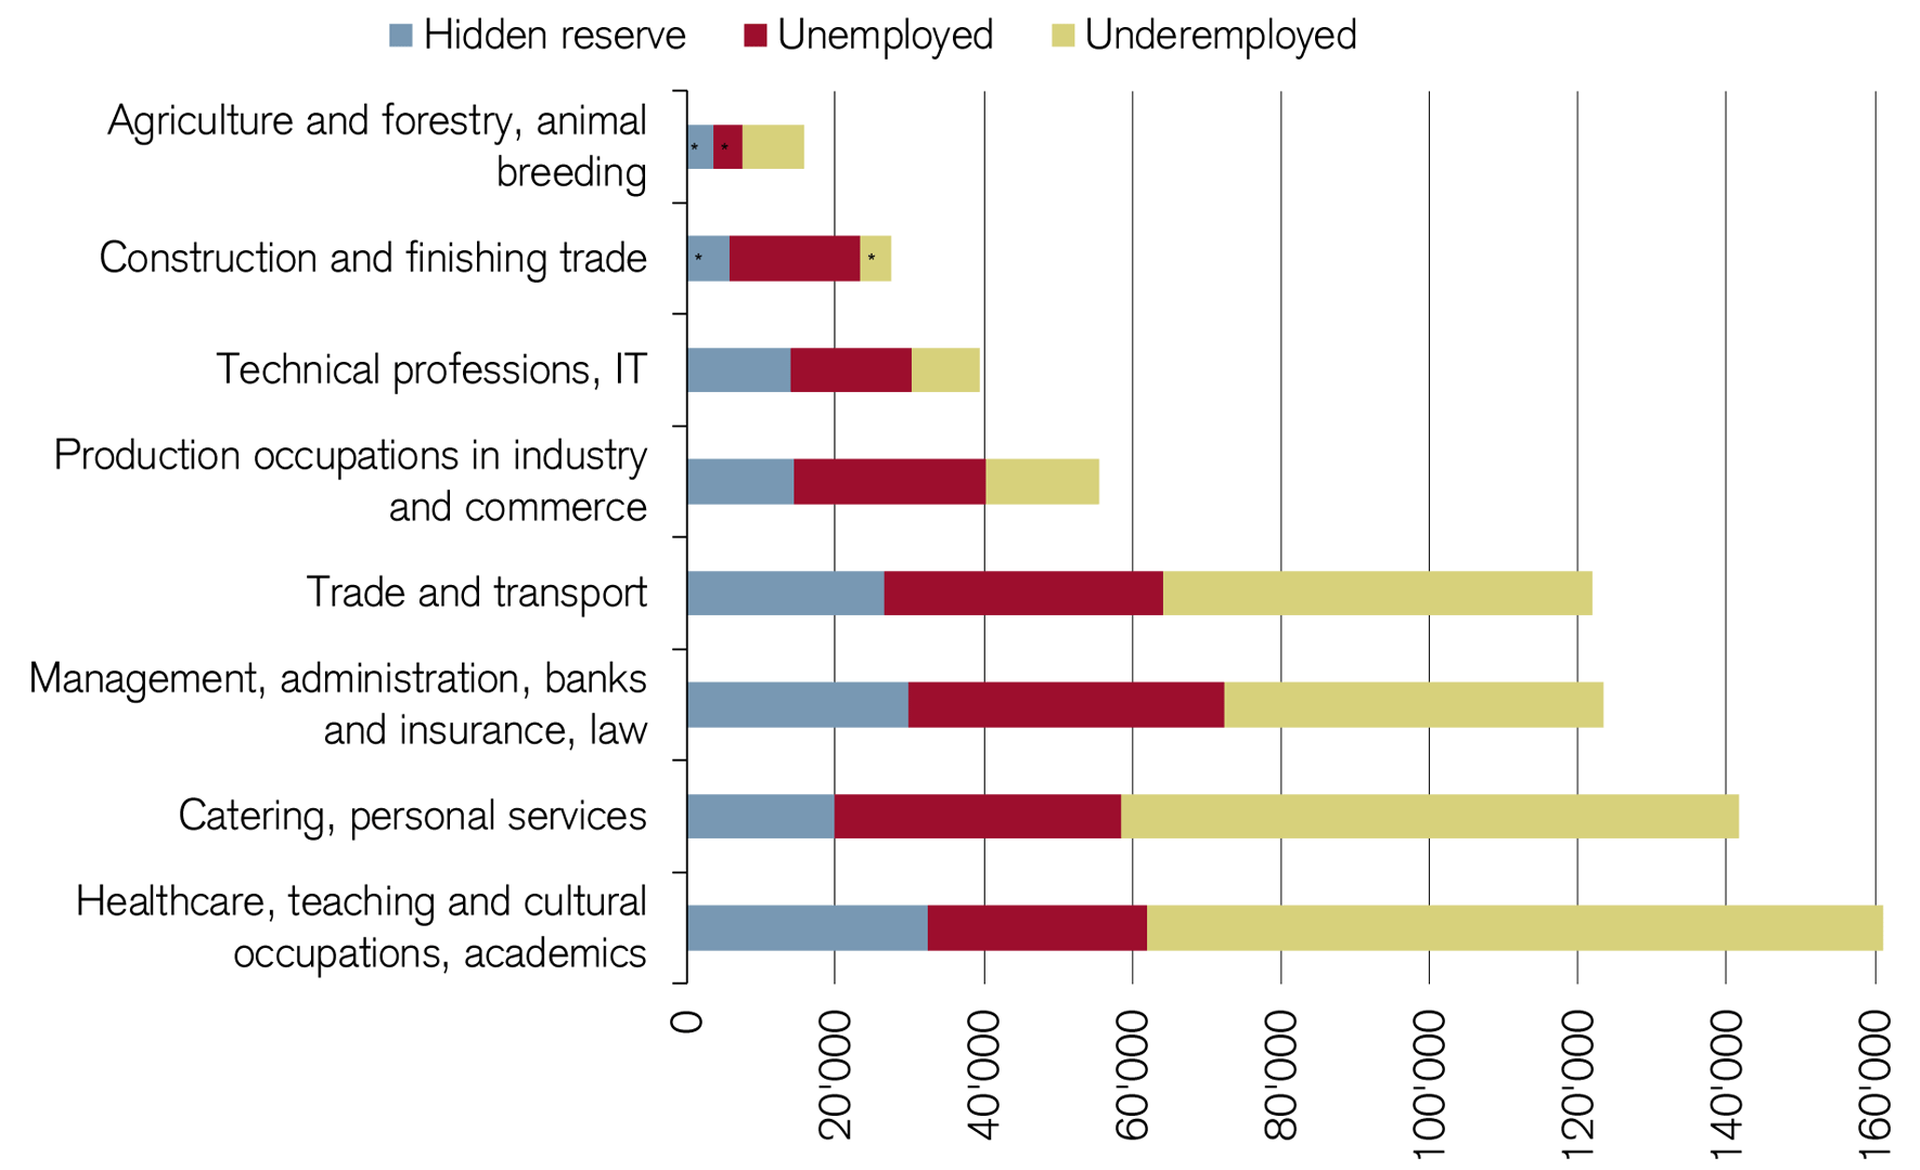 hidden-reserve-in-sectors-with-shortage-of-skilled-workers